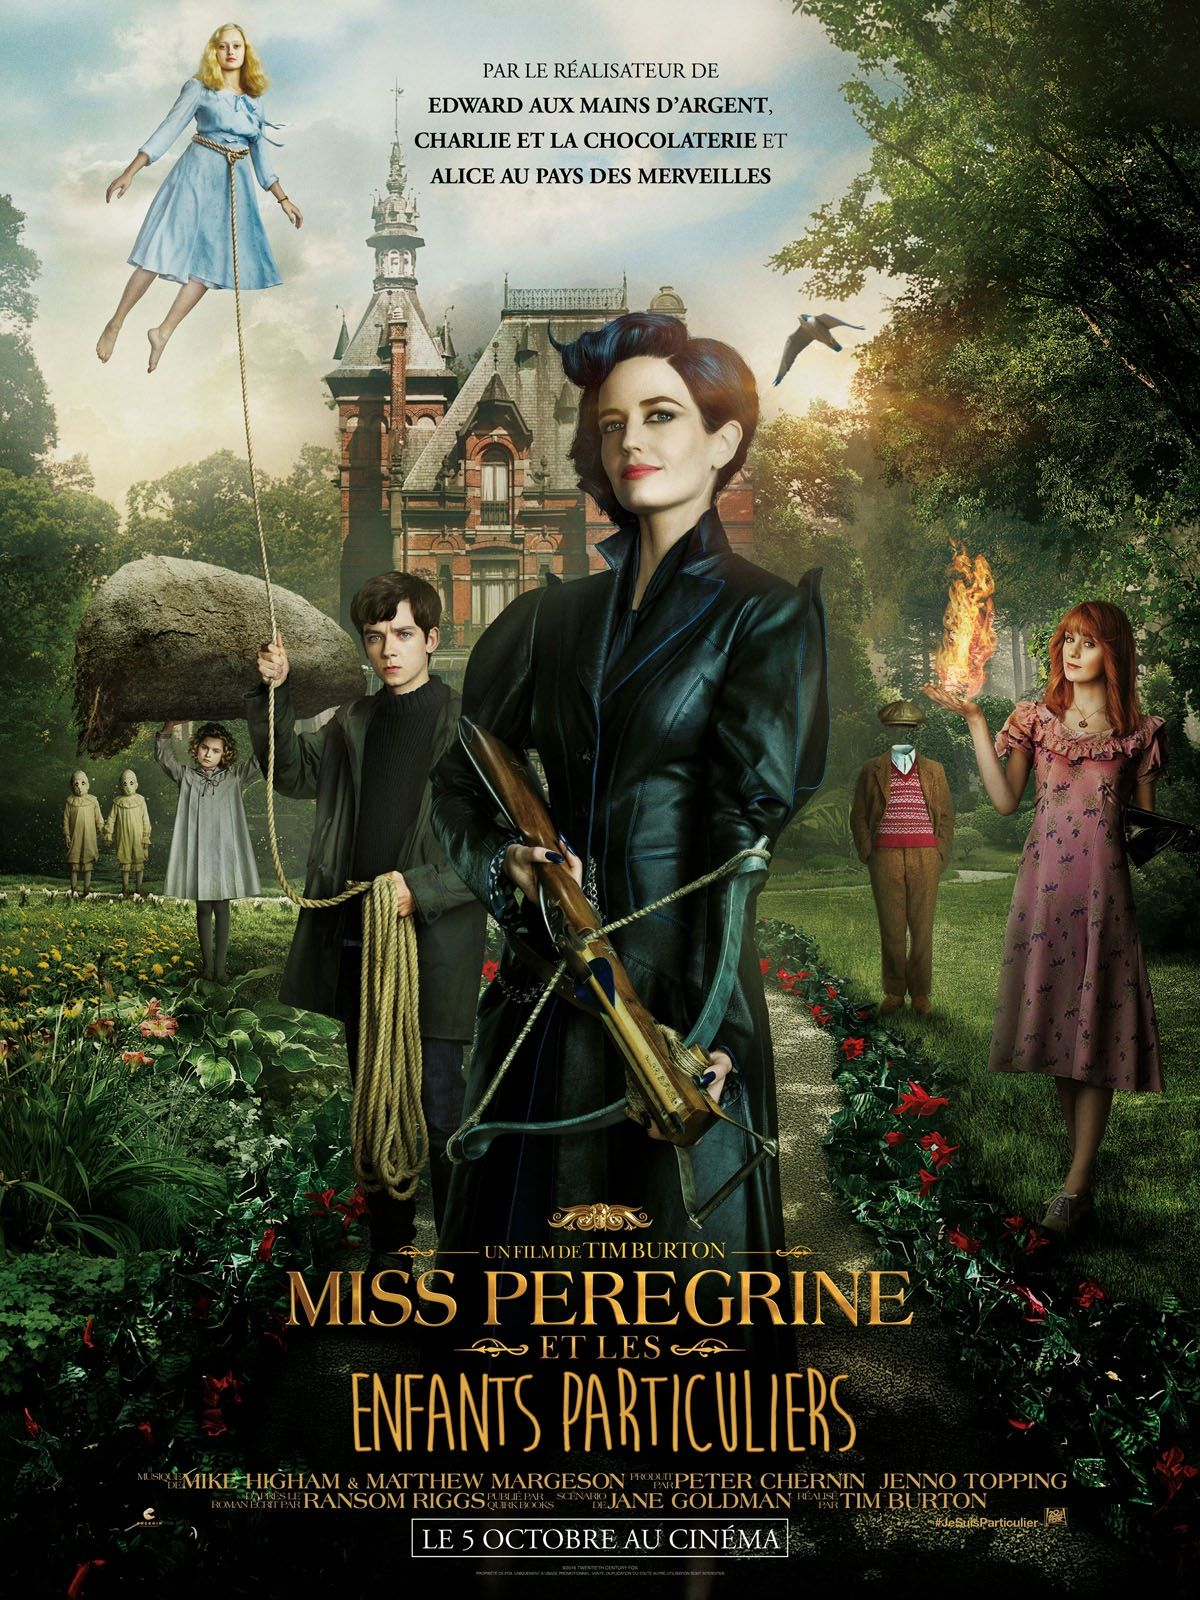 Charlie Et La Chocolaterie 2 Streaming Vf Check more at  https://www.nicolasbravo.info/char… | Peculiar children movie, Peculiar  children, Home for peculiar children